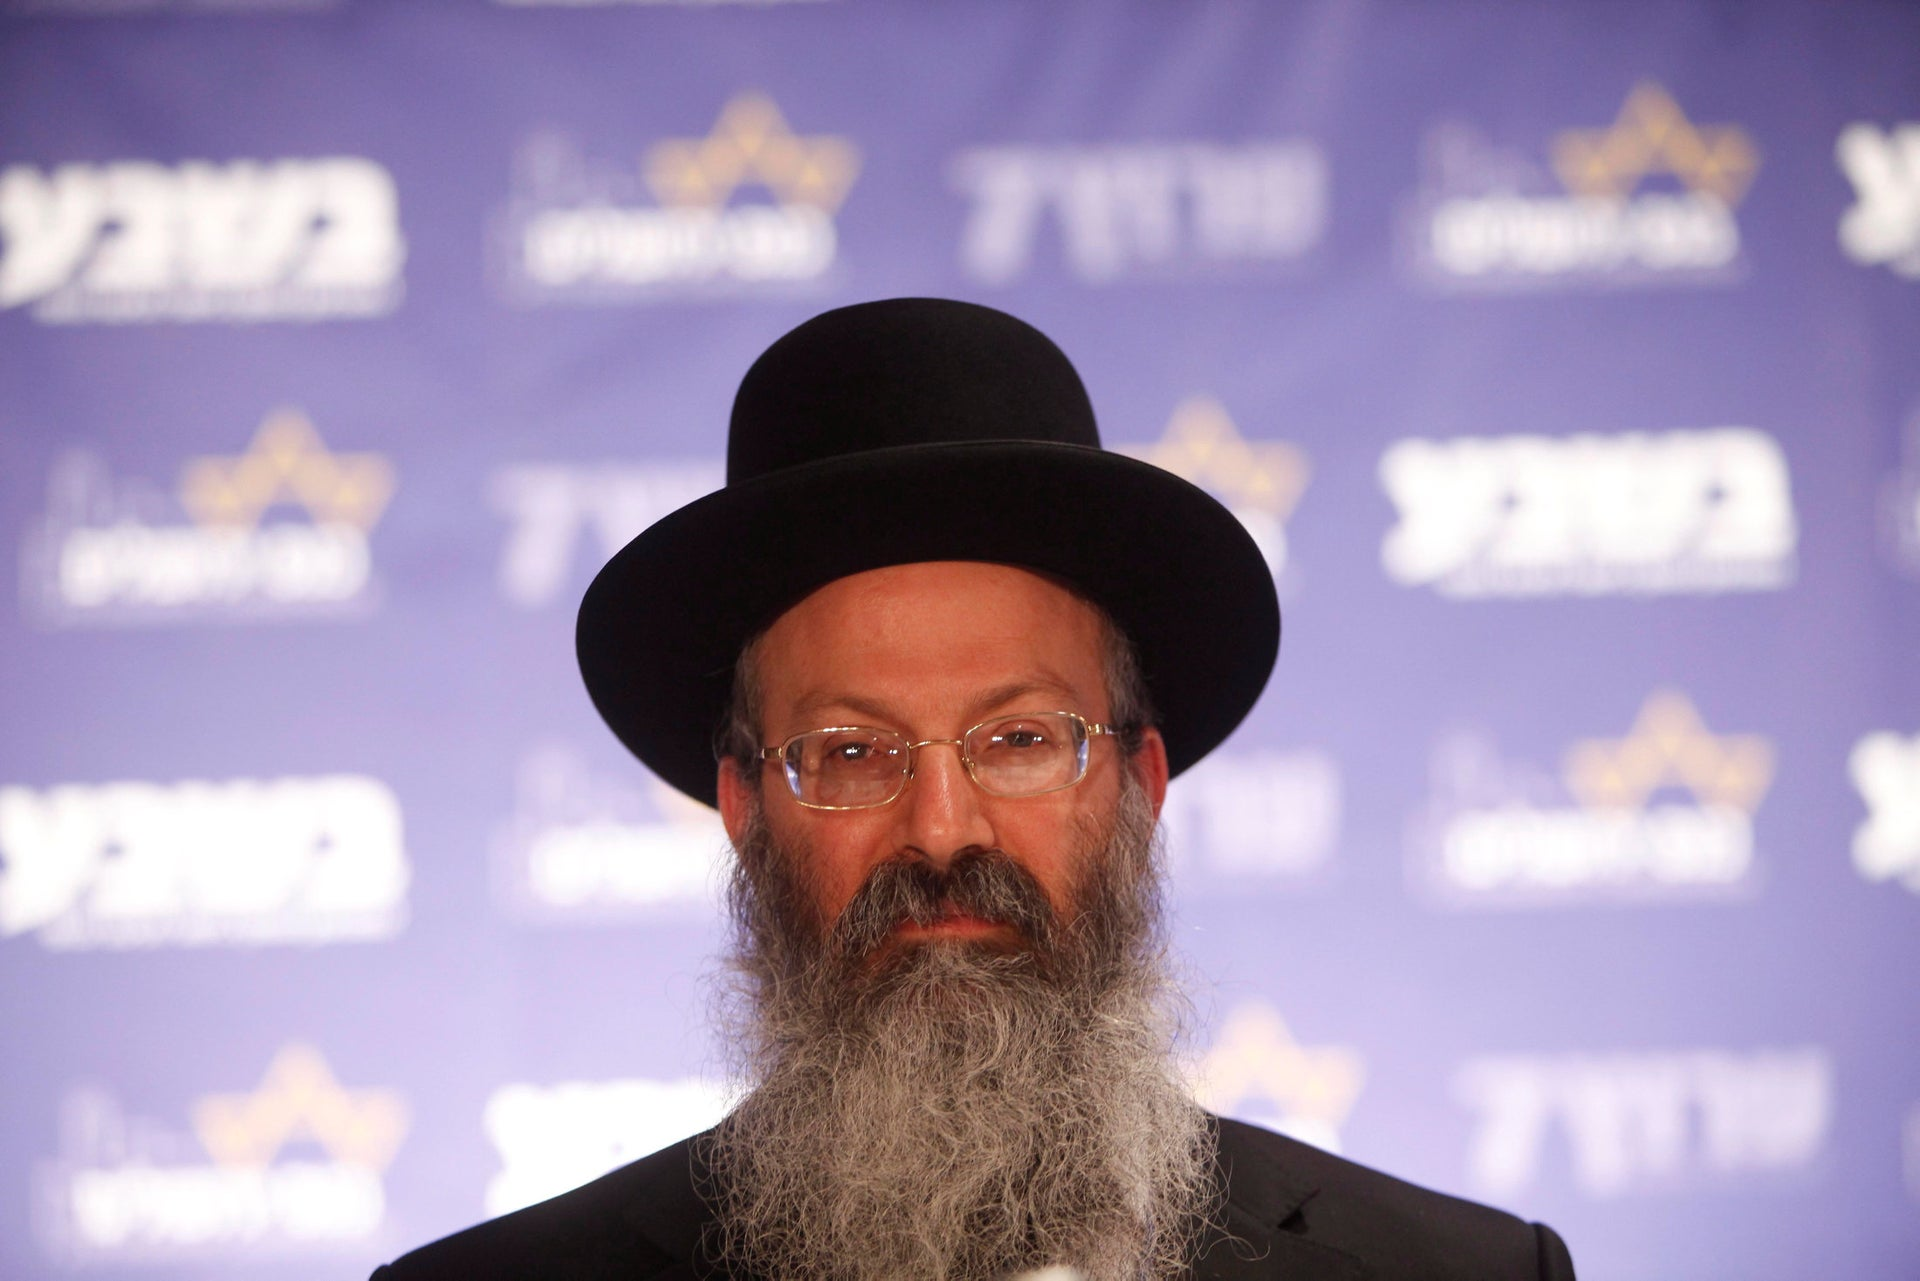 Har Bracha's spiritual leader, Rabbi Eliezer Melamed, ruled that it was fine for Christians to work the fields of Jewish farmers, so long as they did not engage in missionary activities.